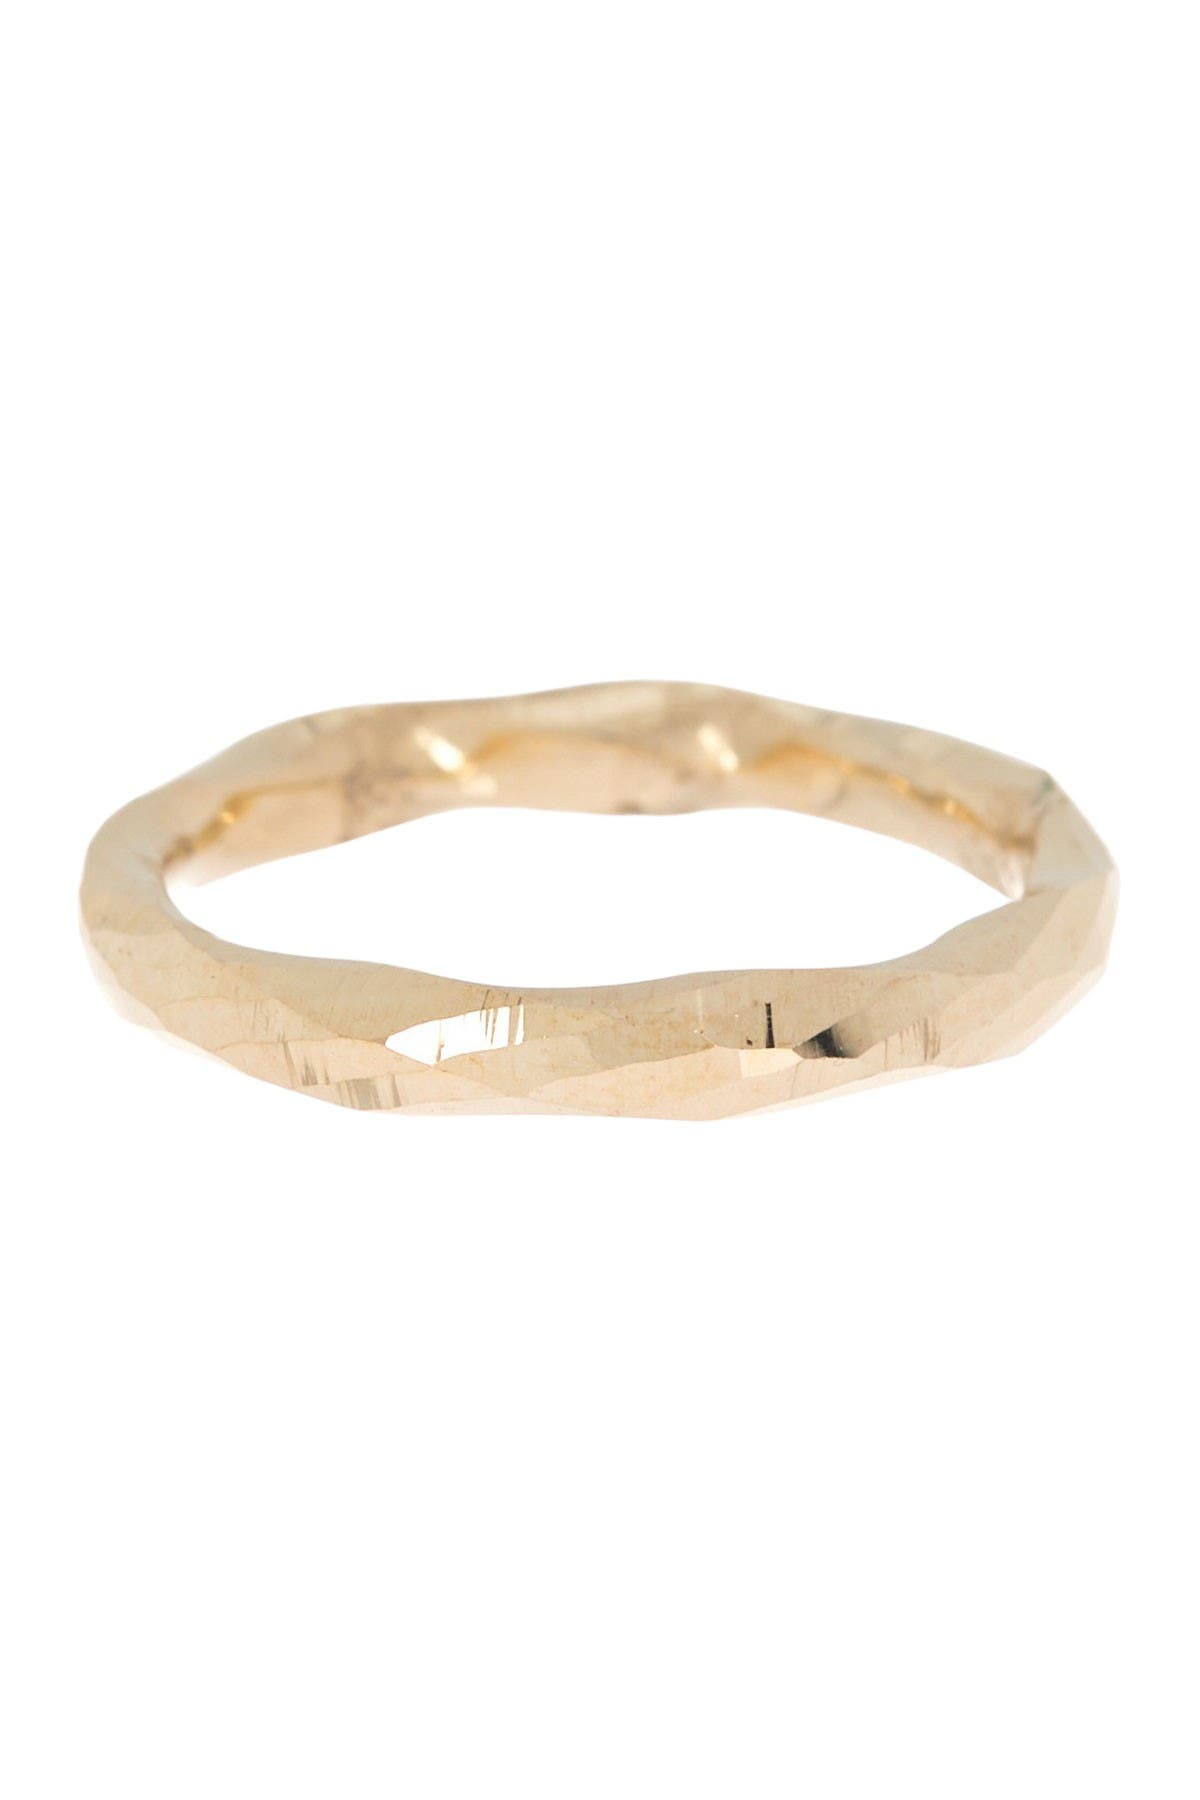 Image of Candela 10K Yellow Gold Textured Ring - Size 7